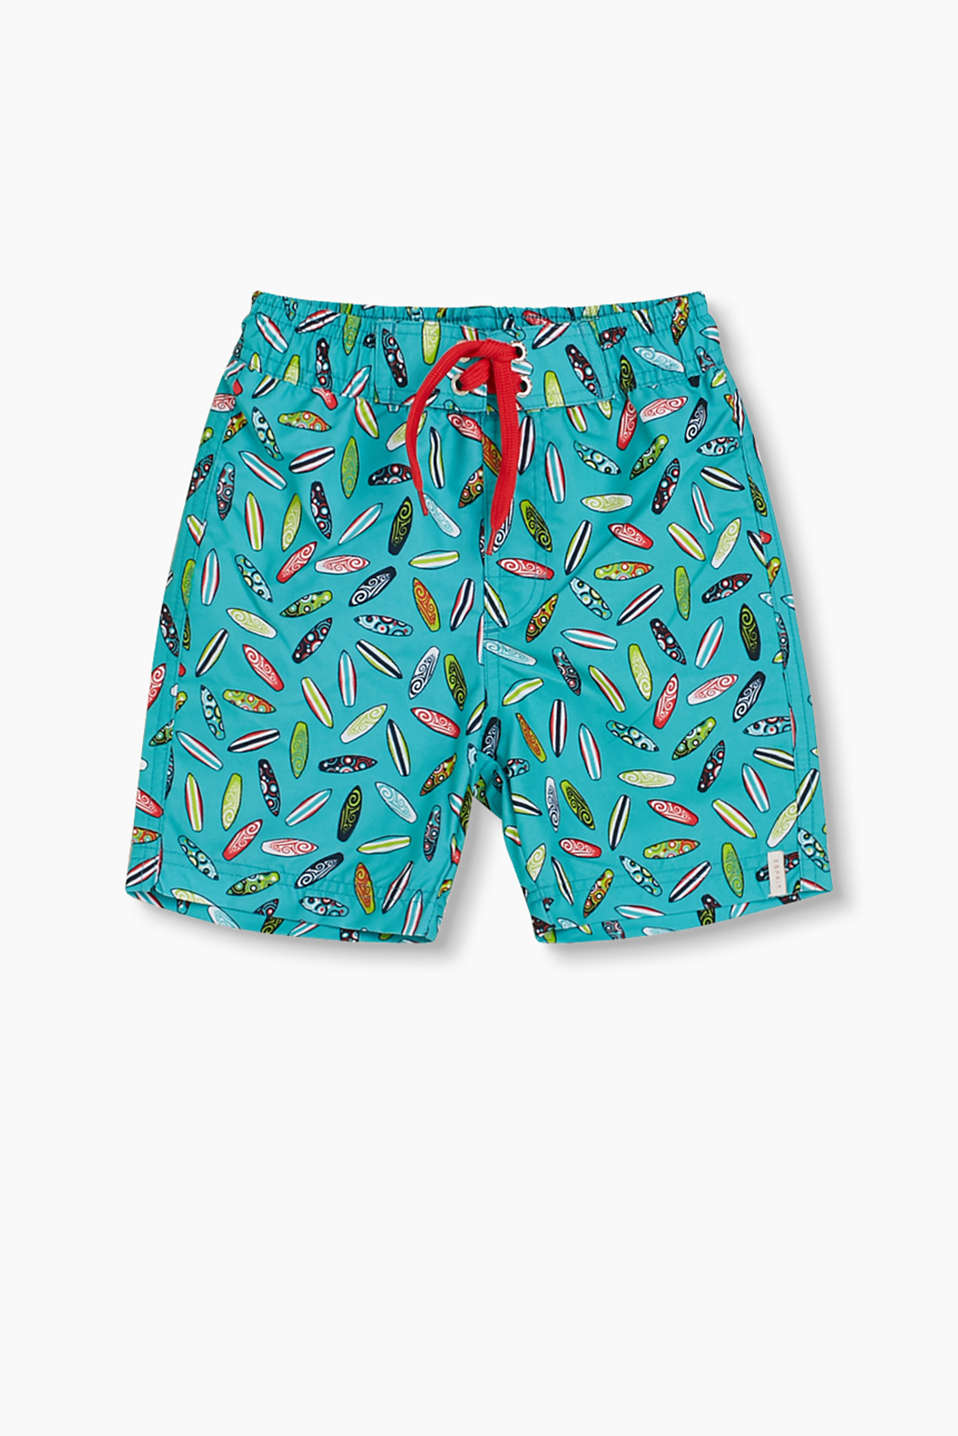 Swim shorts with a surfboard print, inner briefs and an elasticated waistband with drawstrings